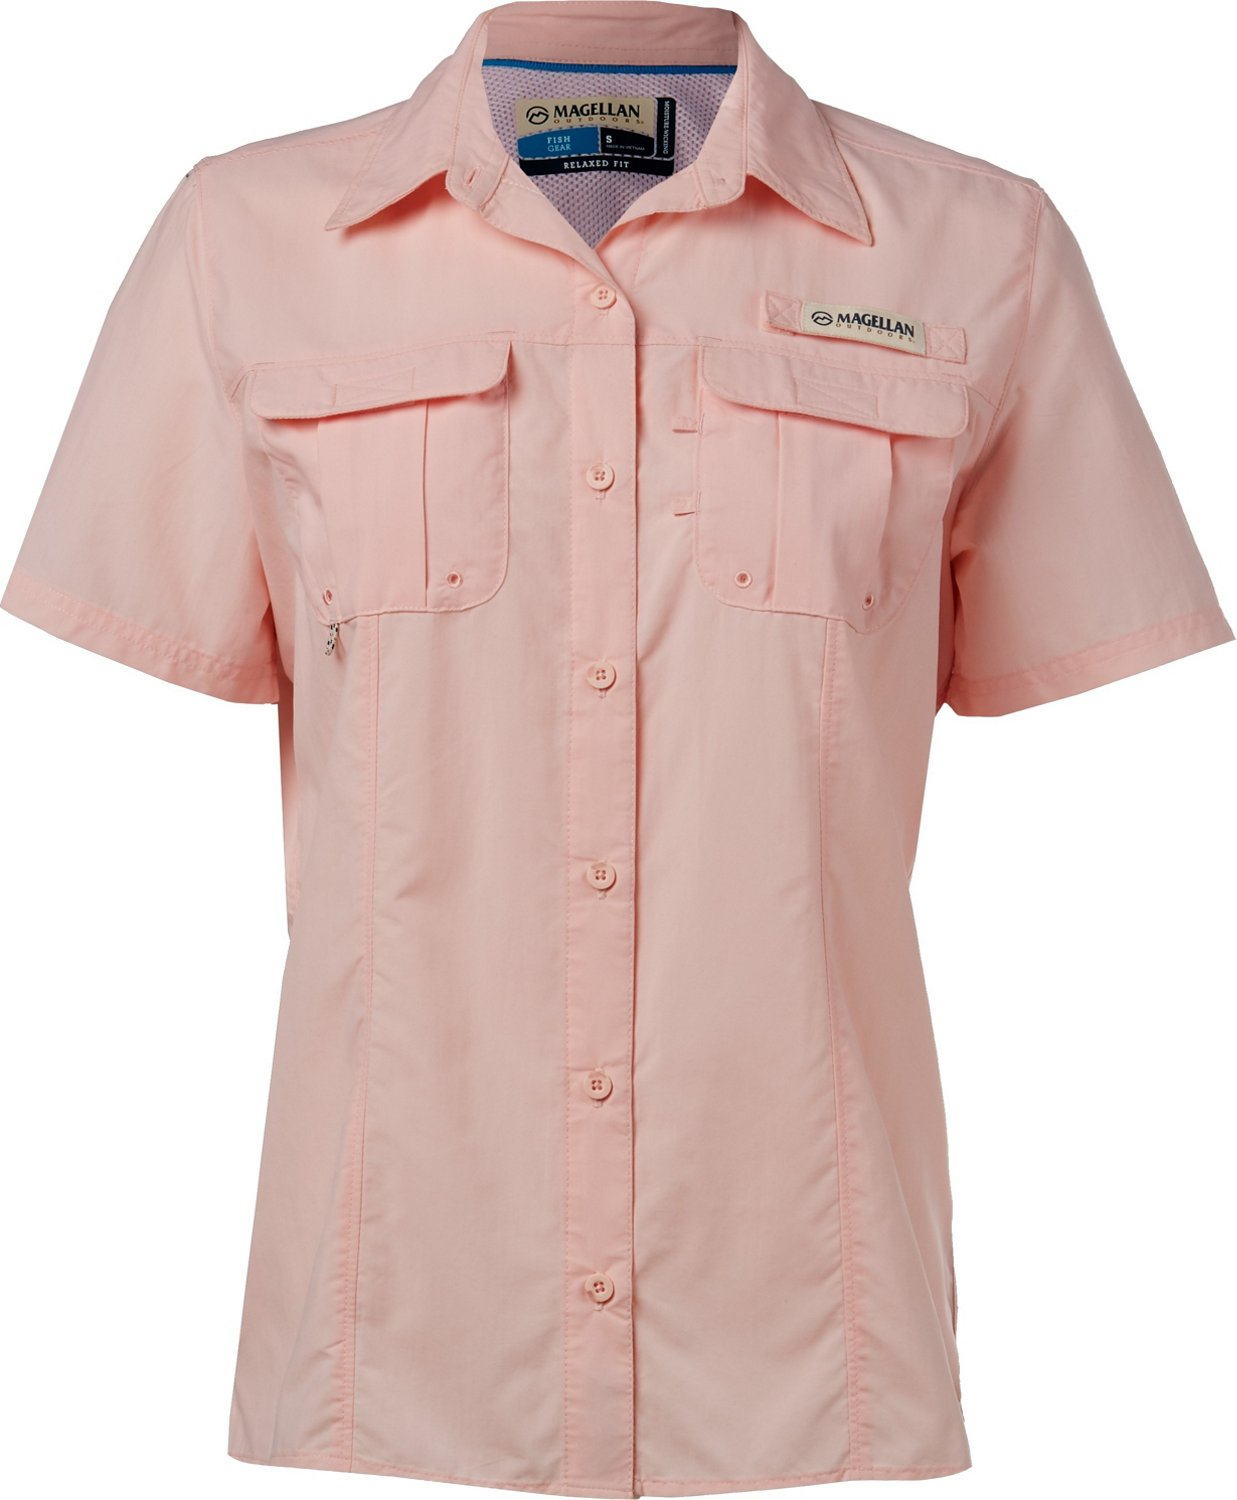 70f69c1e96e91 Display product reviews for Magellan Outdoors Women s Laguna Madre Fishing  Shirt